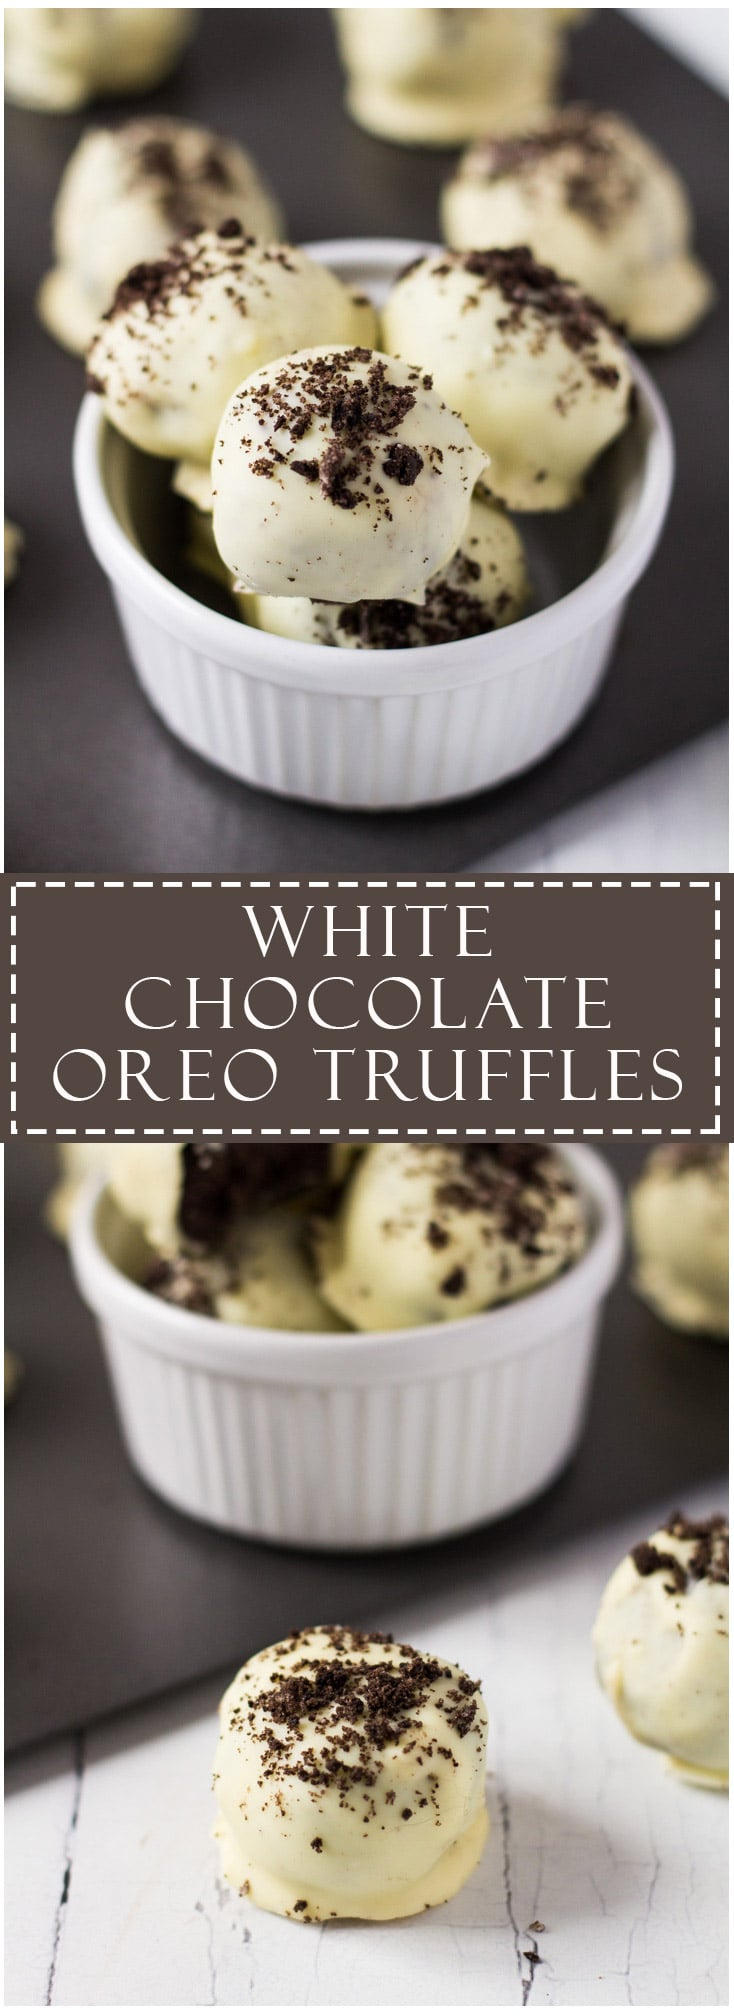 White Chocolate Oreo Truffles - Deliciously creamy and fudgy Oreo truffles dipped in white chocolate, and sprinkled with Oreo crumbs. No-bake and only 3 ingredients!